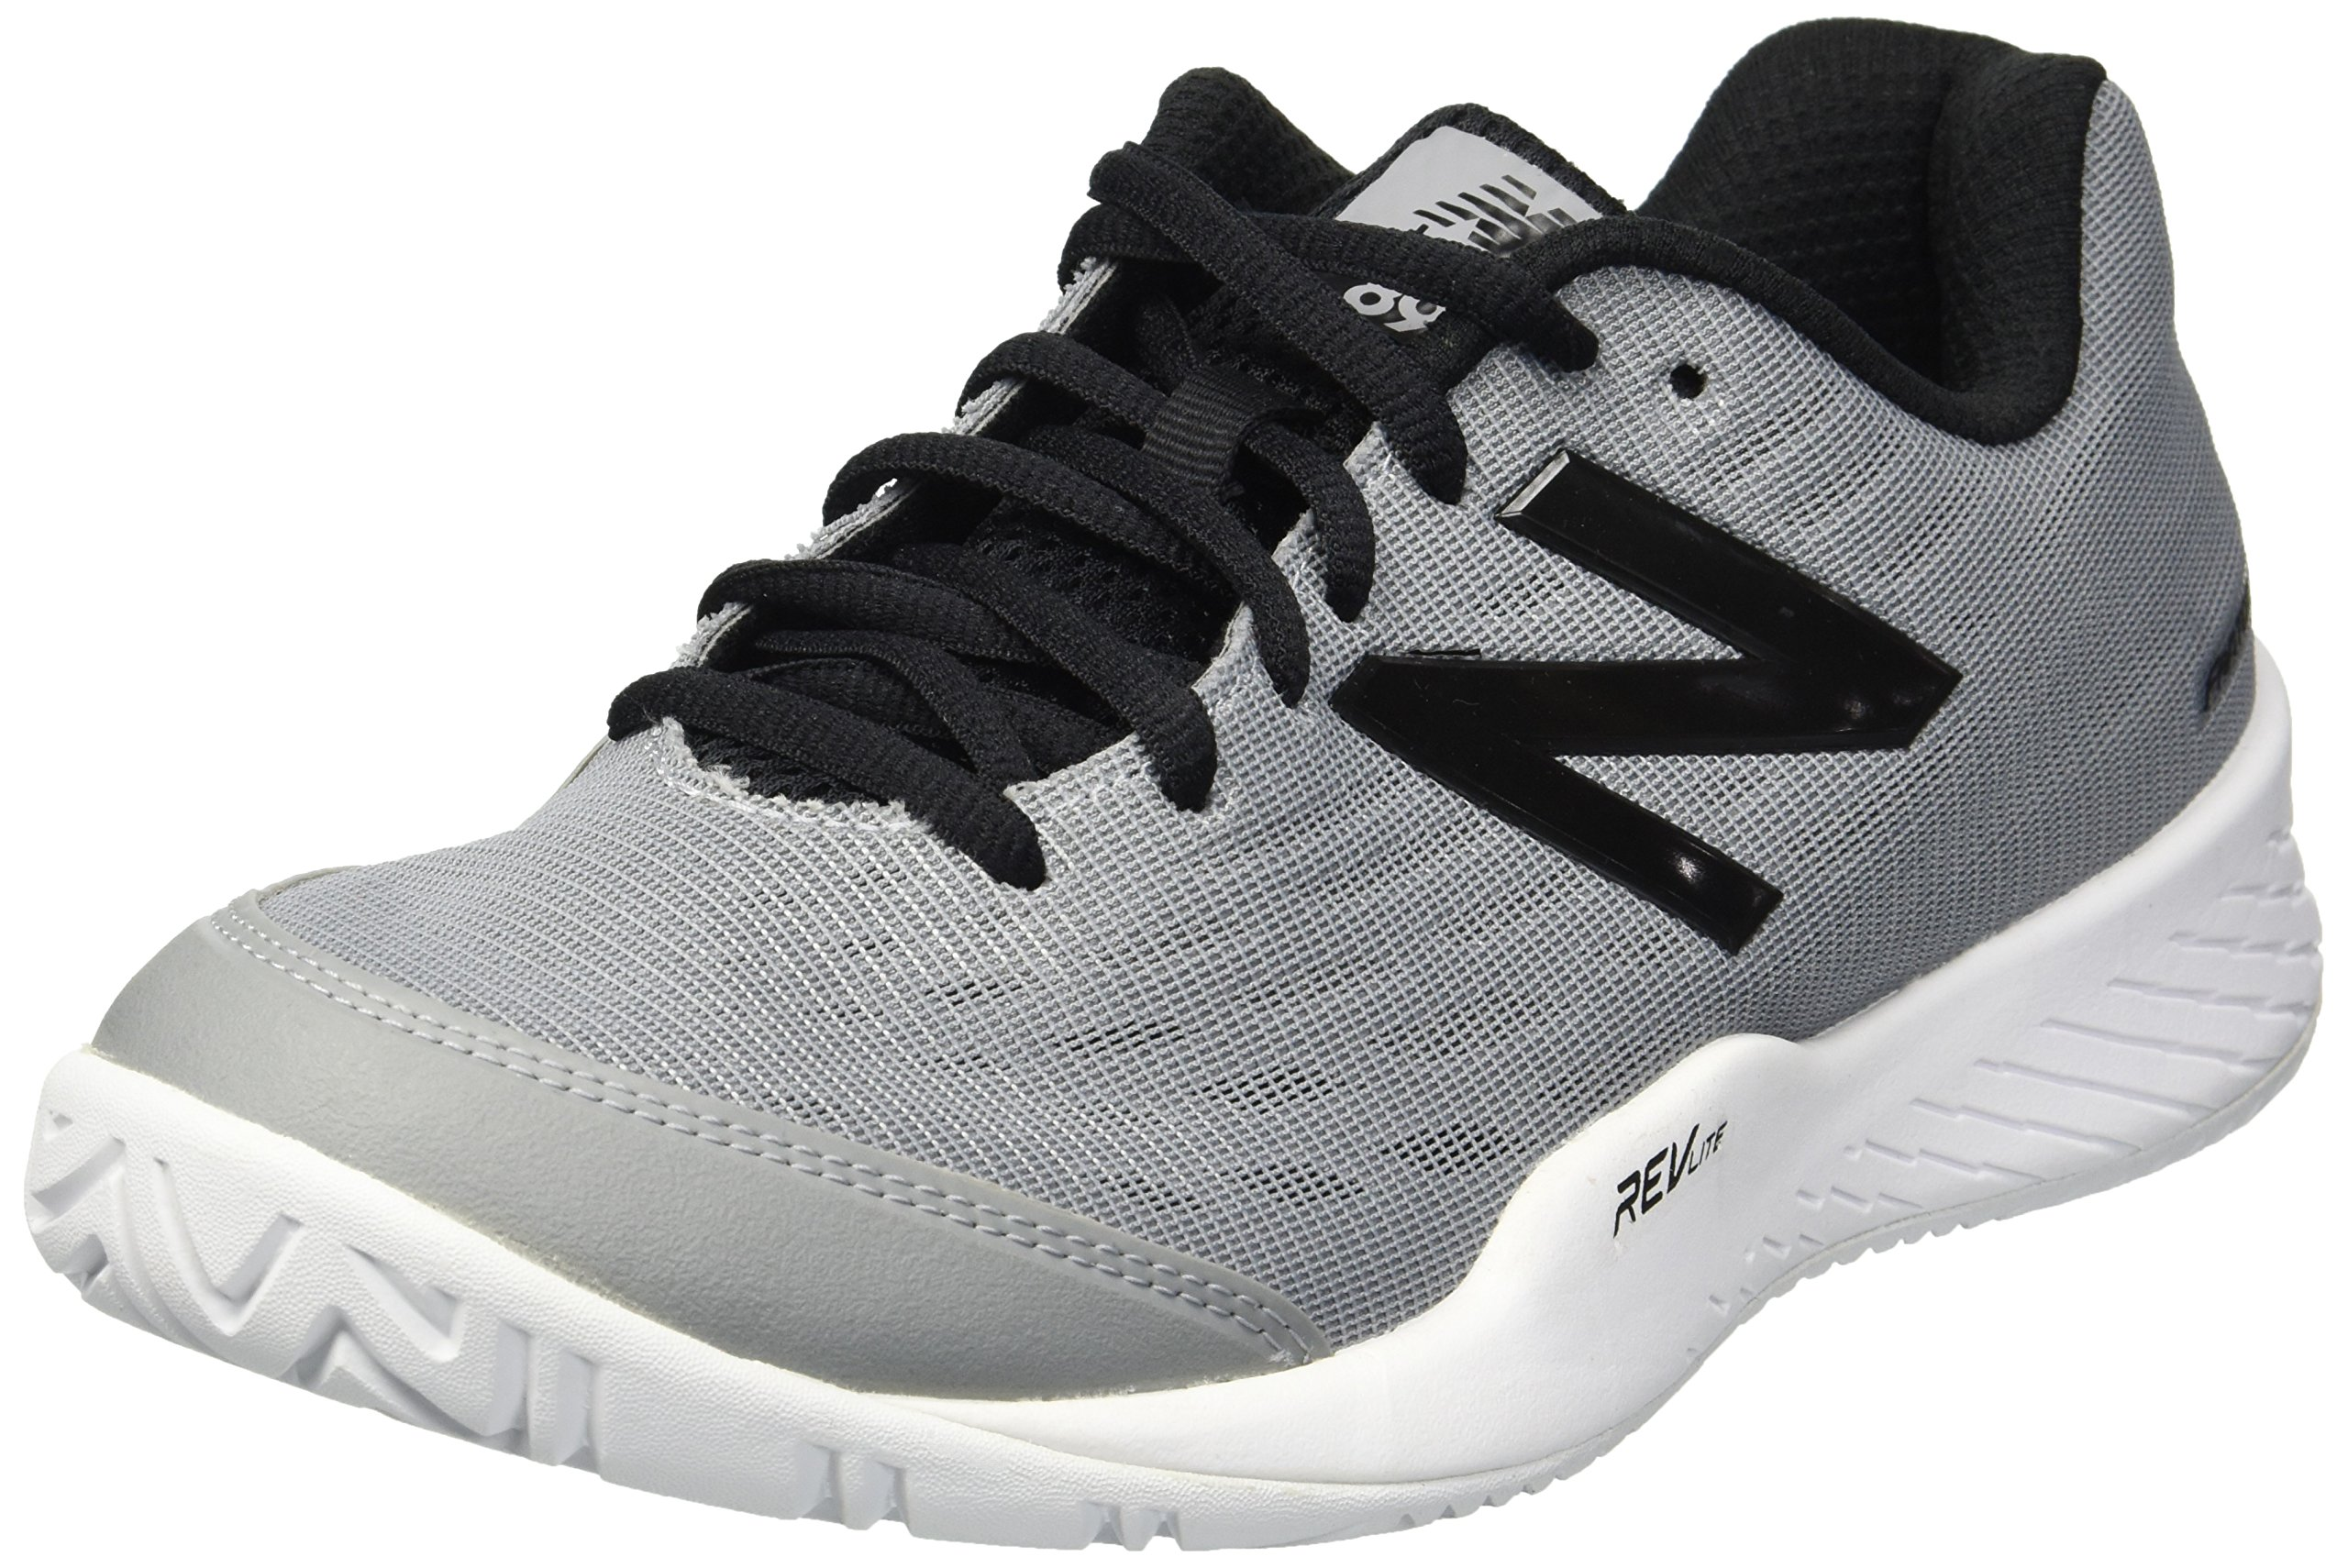 New Balance Men's 896v2 Hard Court Running Shoe, Grey/Black, 11 D US by New Balance